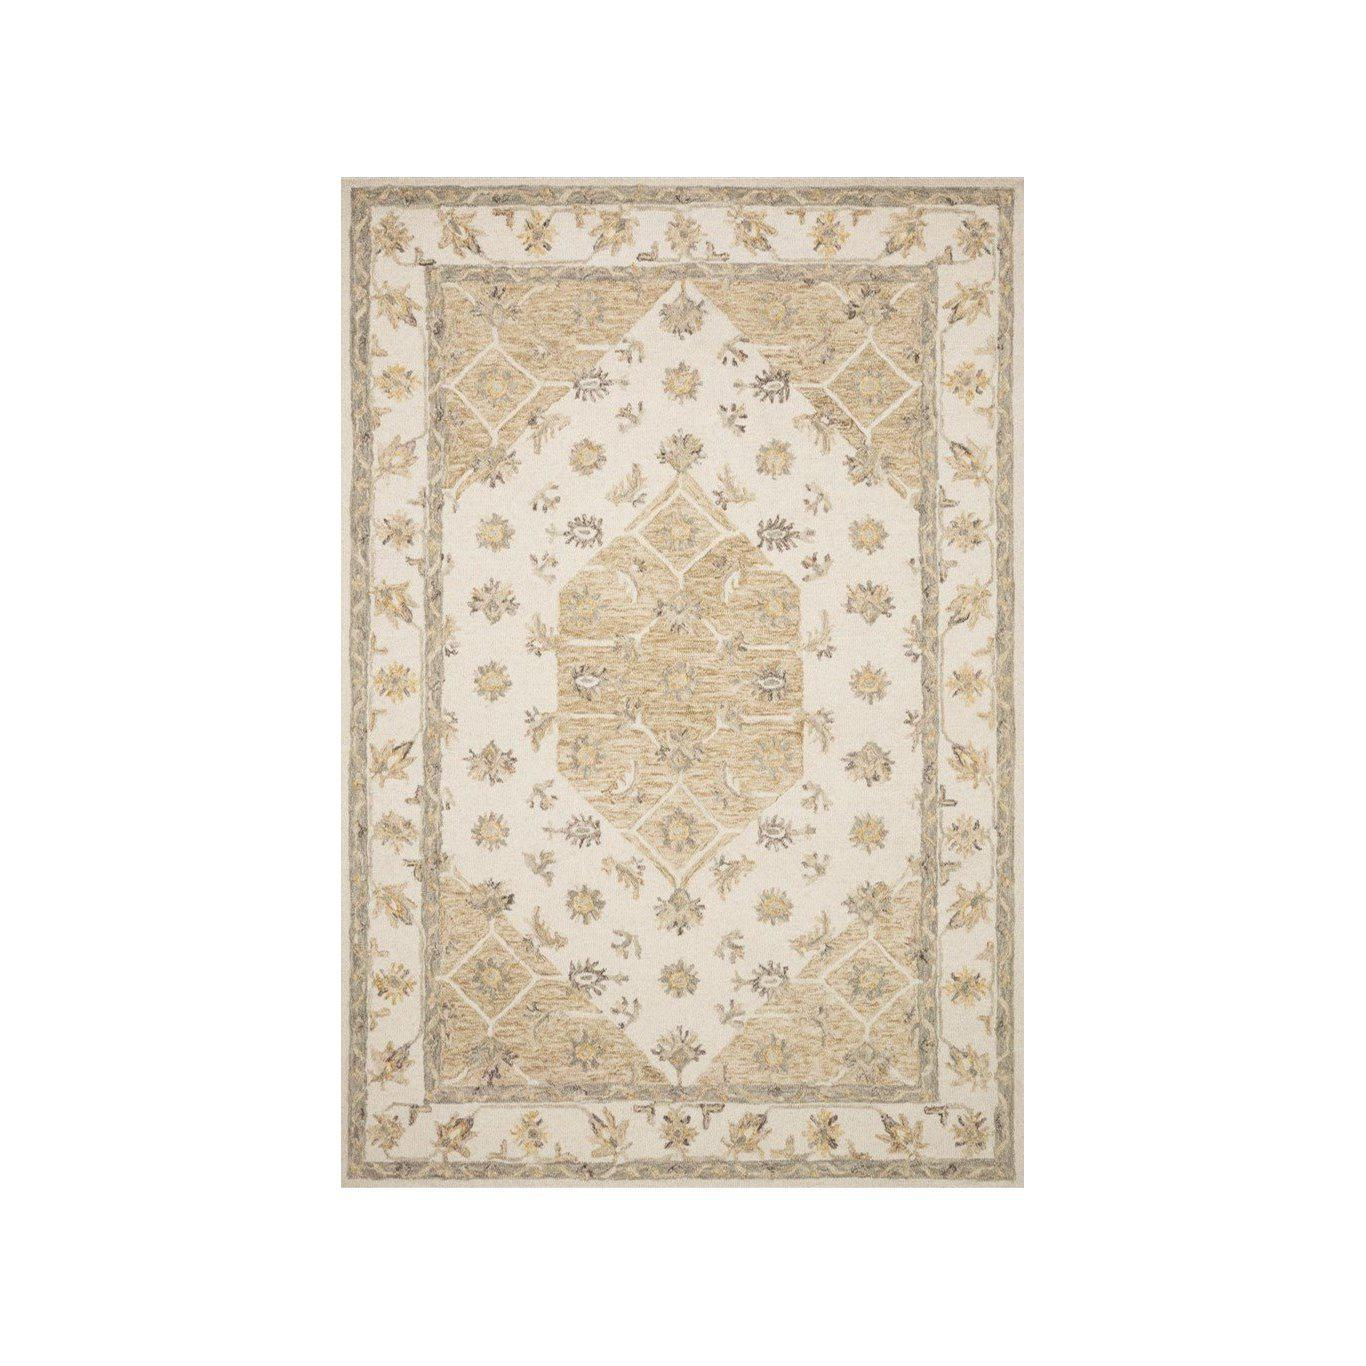 Joanna Gaines Ryeland Rug Collection - RYE-01 Ivory/Natural-Loloi Rugs-Blue Hand Home